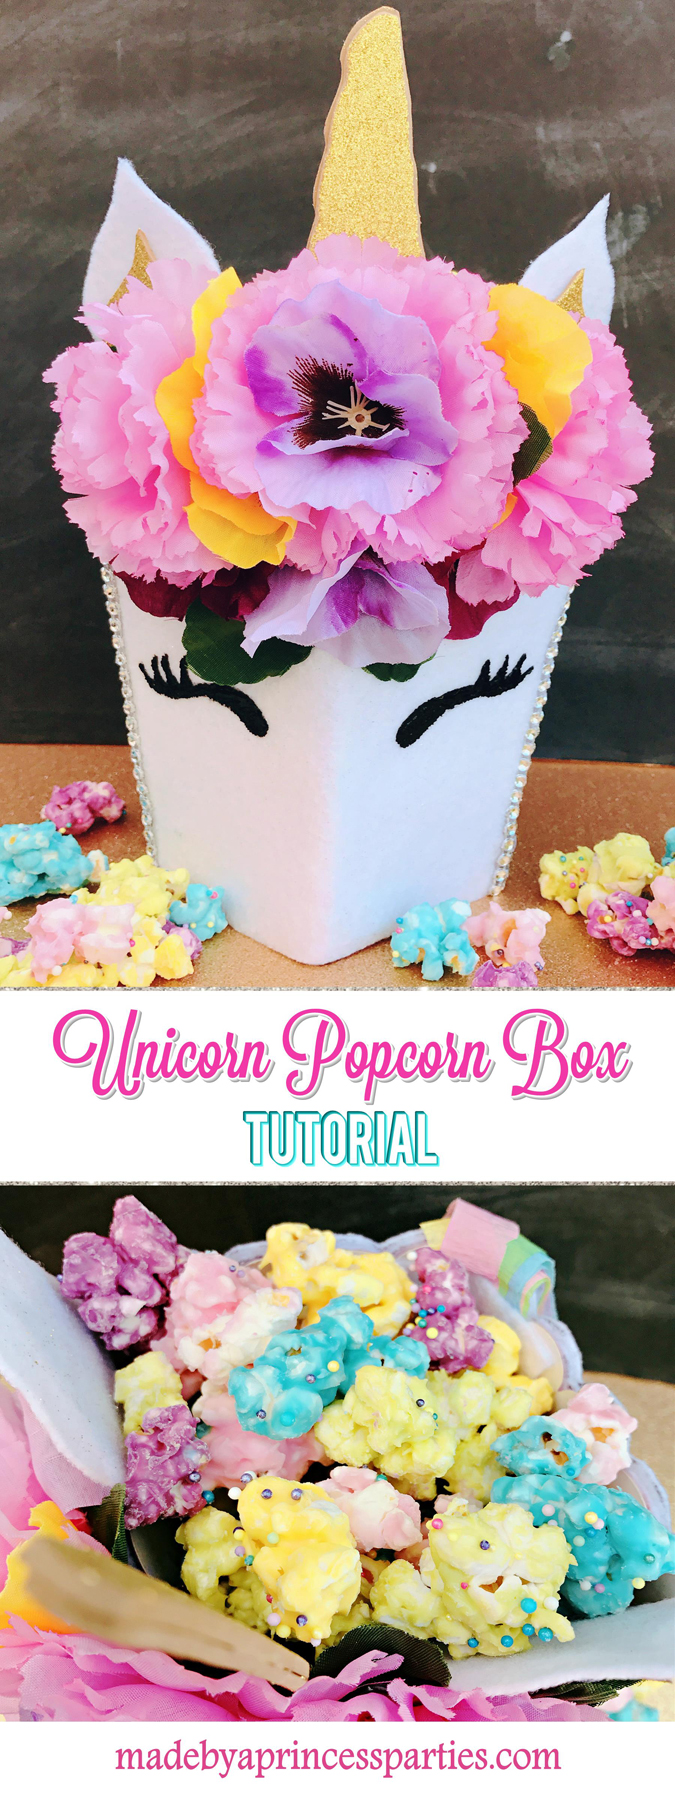 Unicorn Popcorn Box Tutorial Pin it for later @madebyaprincess #popcornboxparty2017